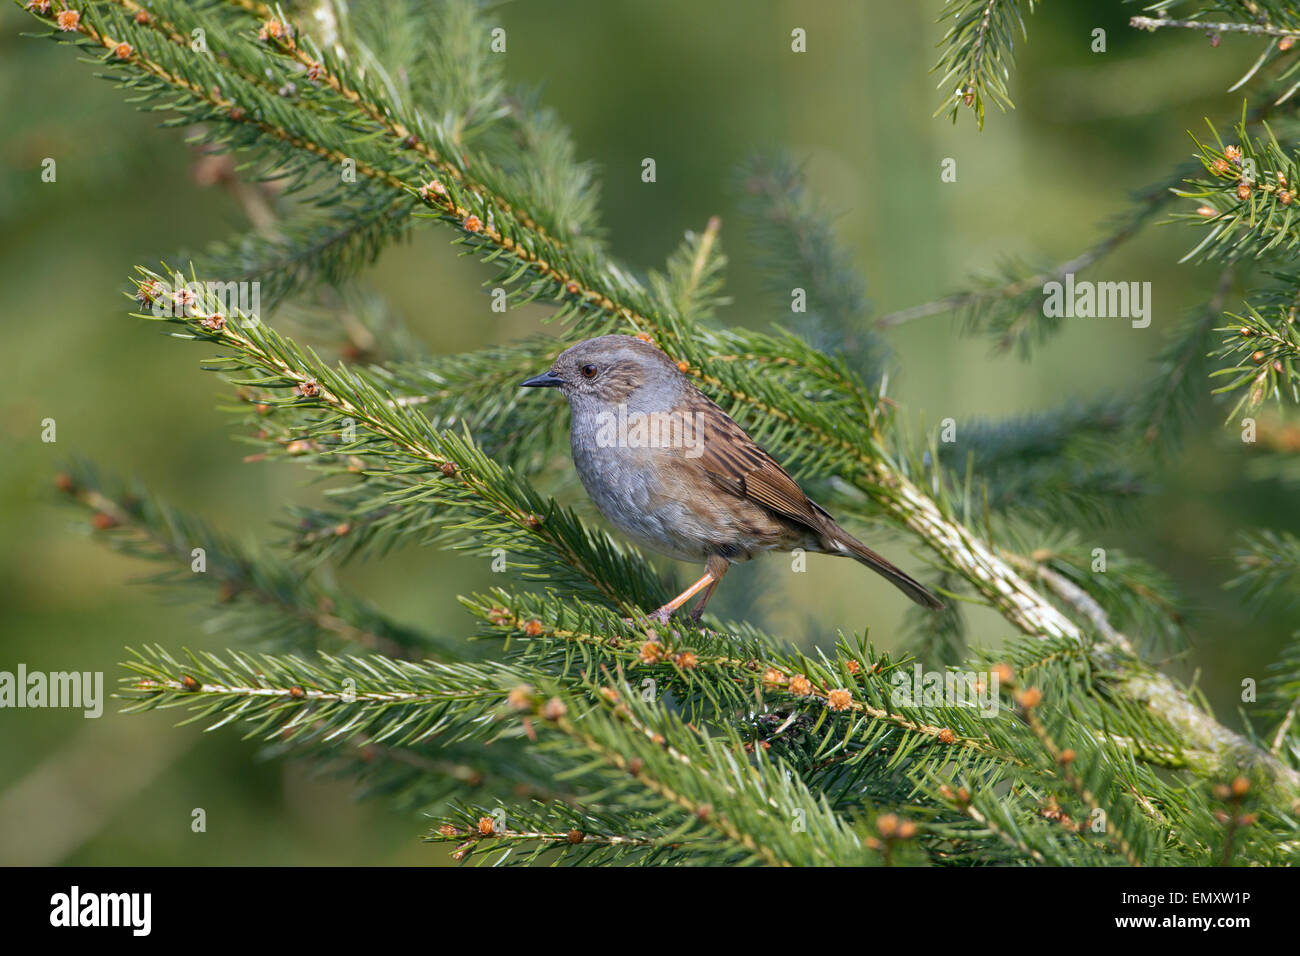 Hedge Sparrow Prunella modularis on conifer in Spring - Stock Image